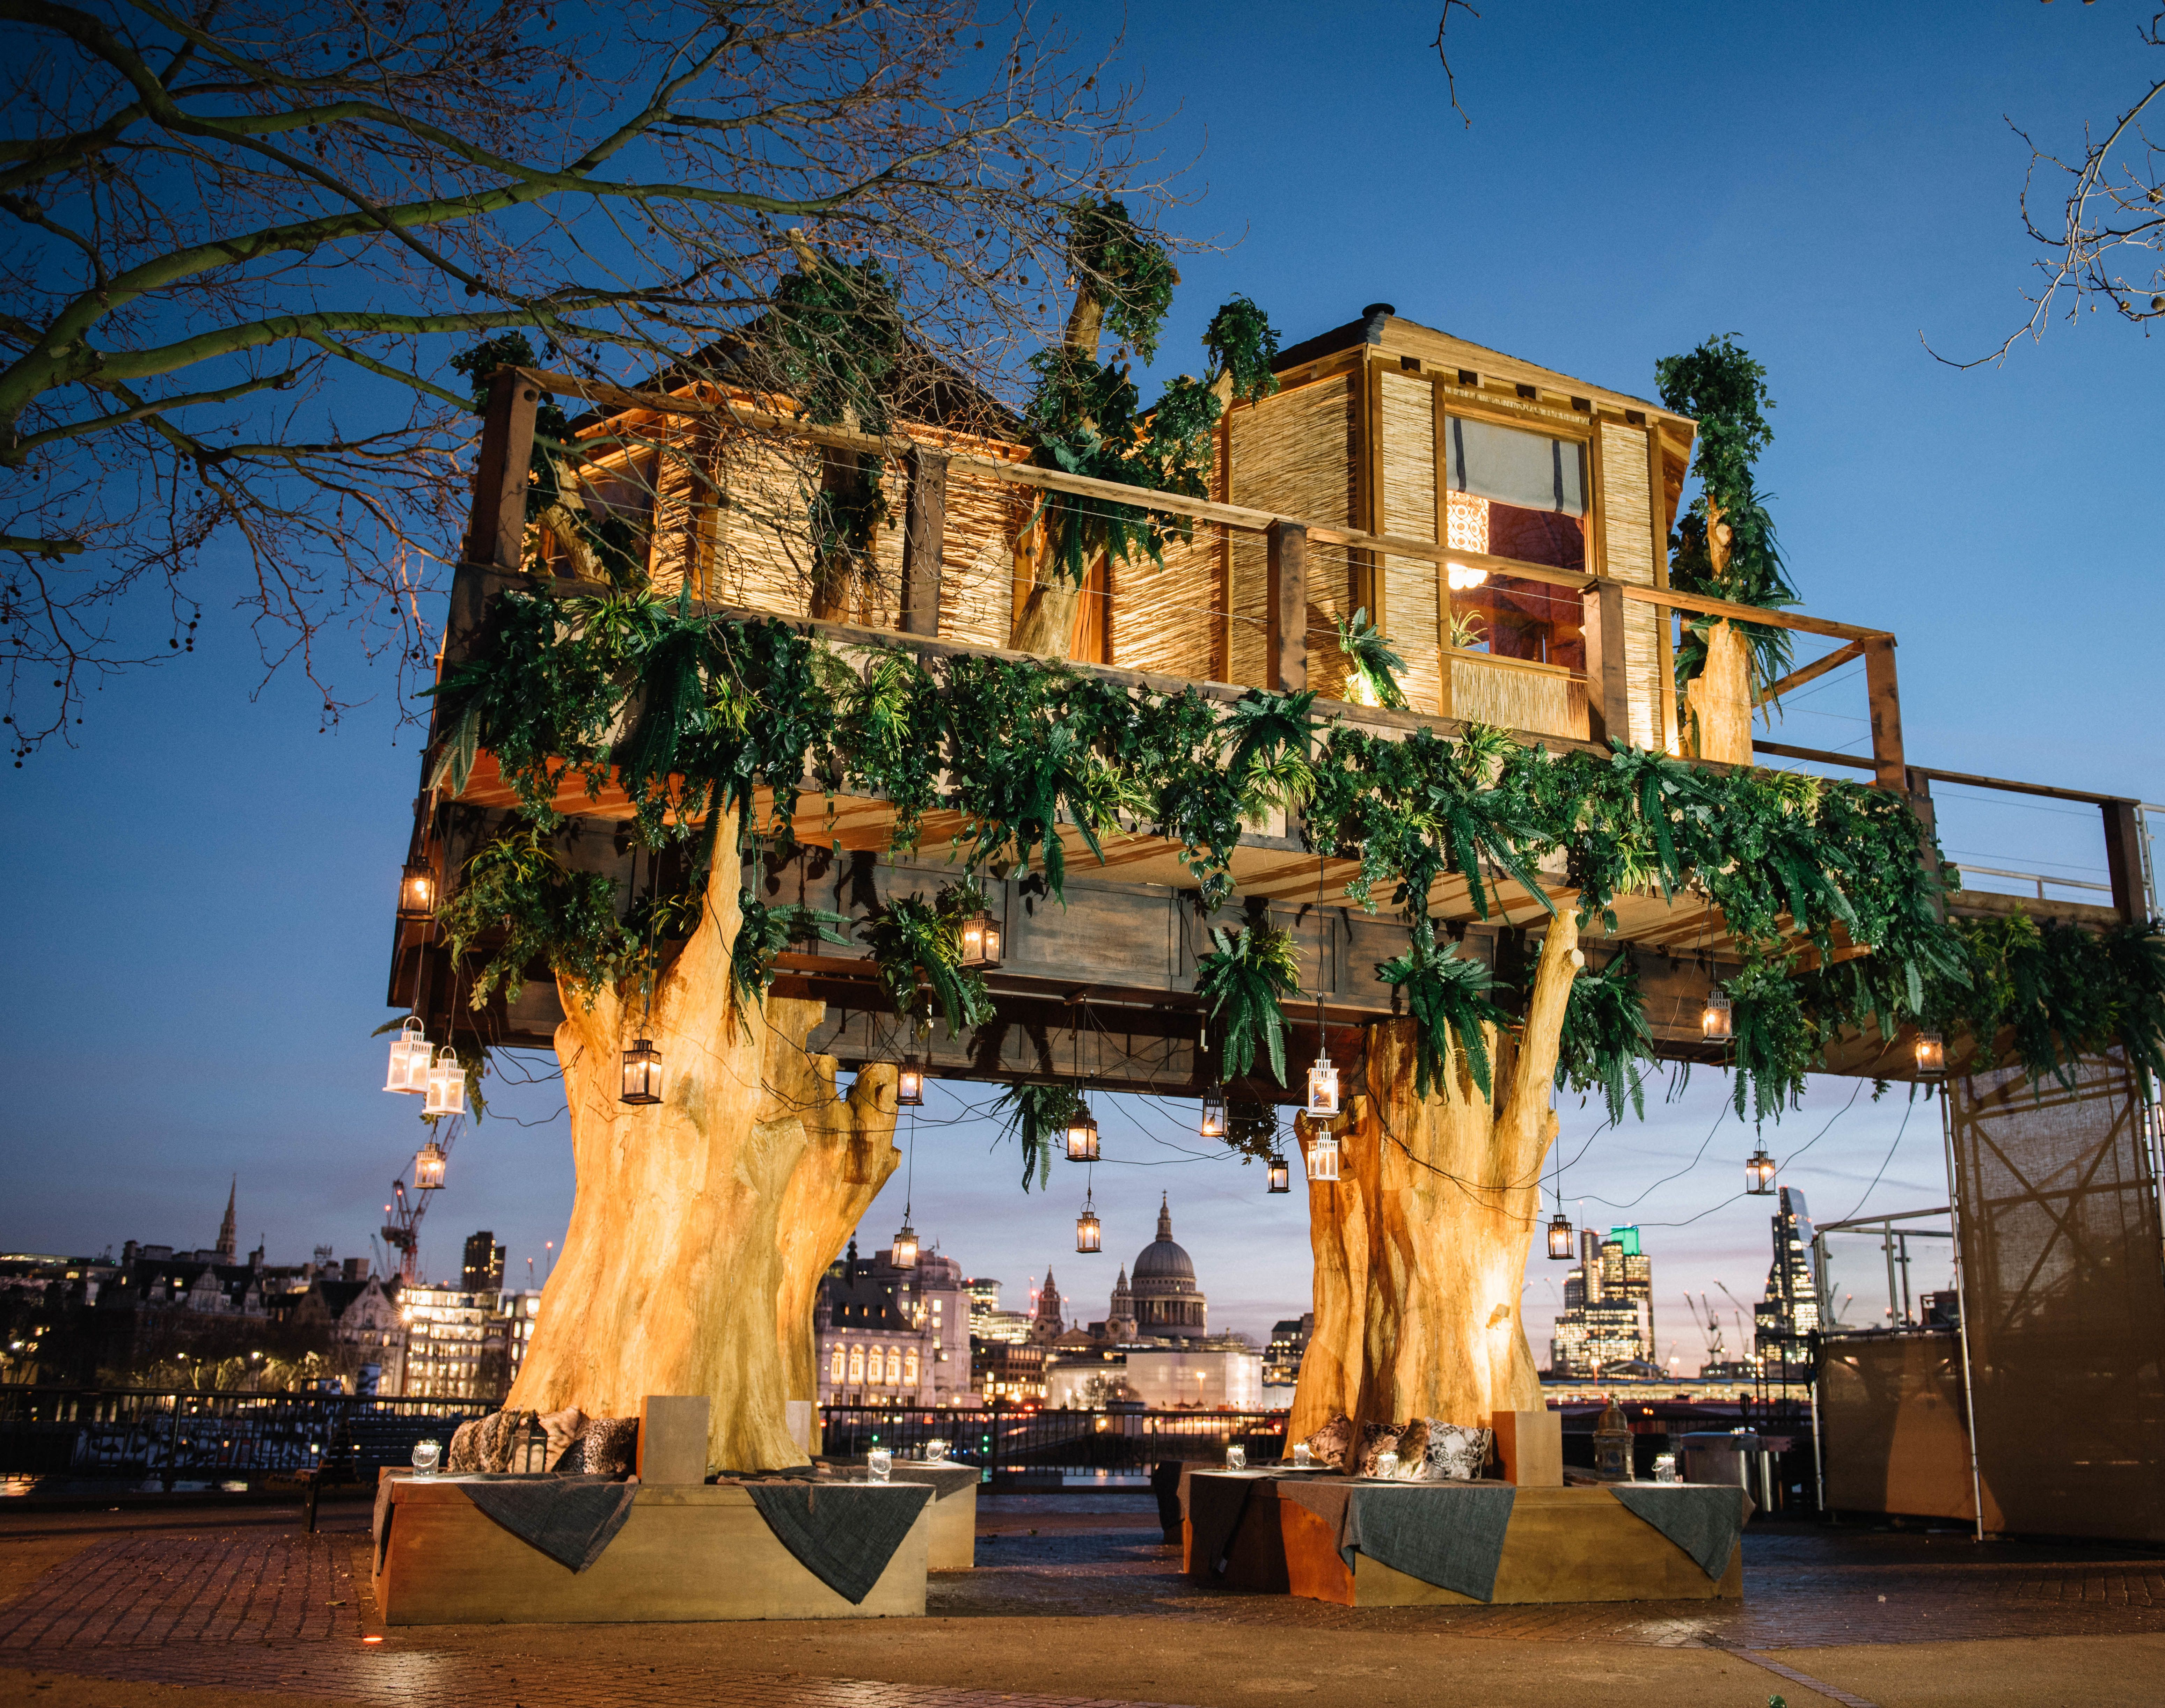 Awesome Londonu0027s New 35 Foot High Luxury Treehouse With Views Of The Thames River  Photos